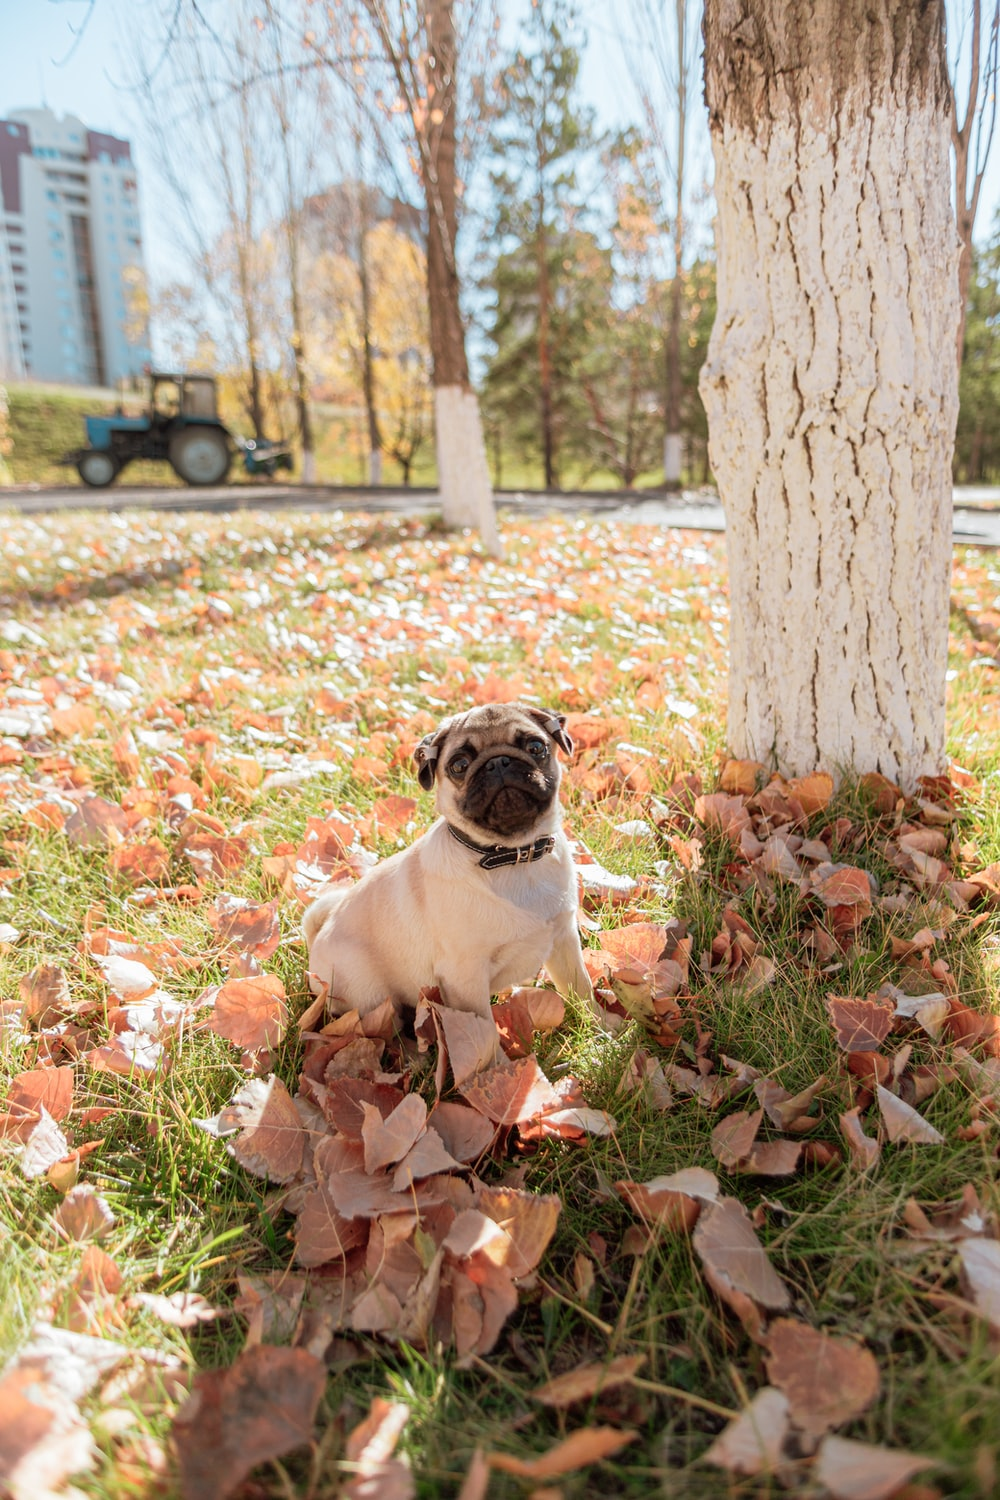 fawn pug sitting on ground with dried leaves